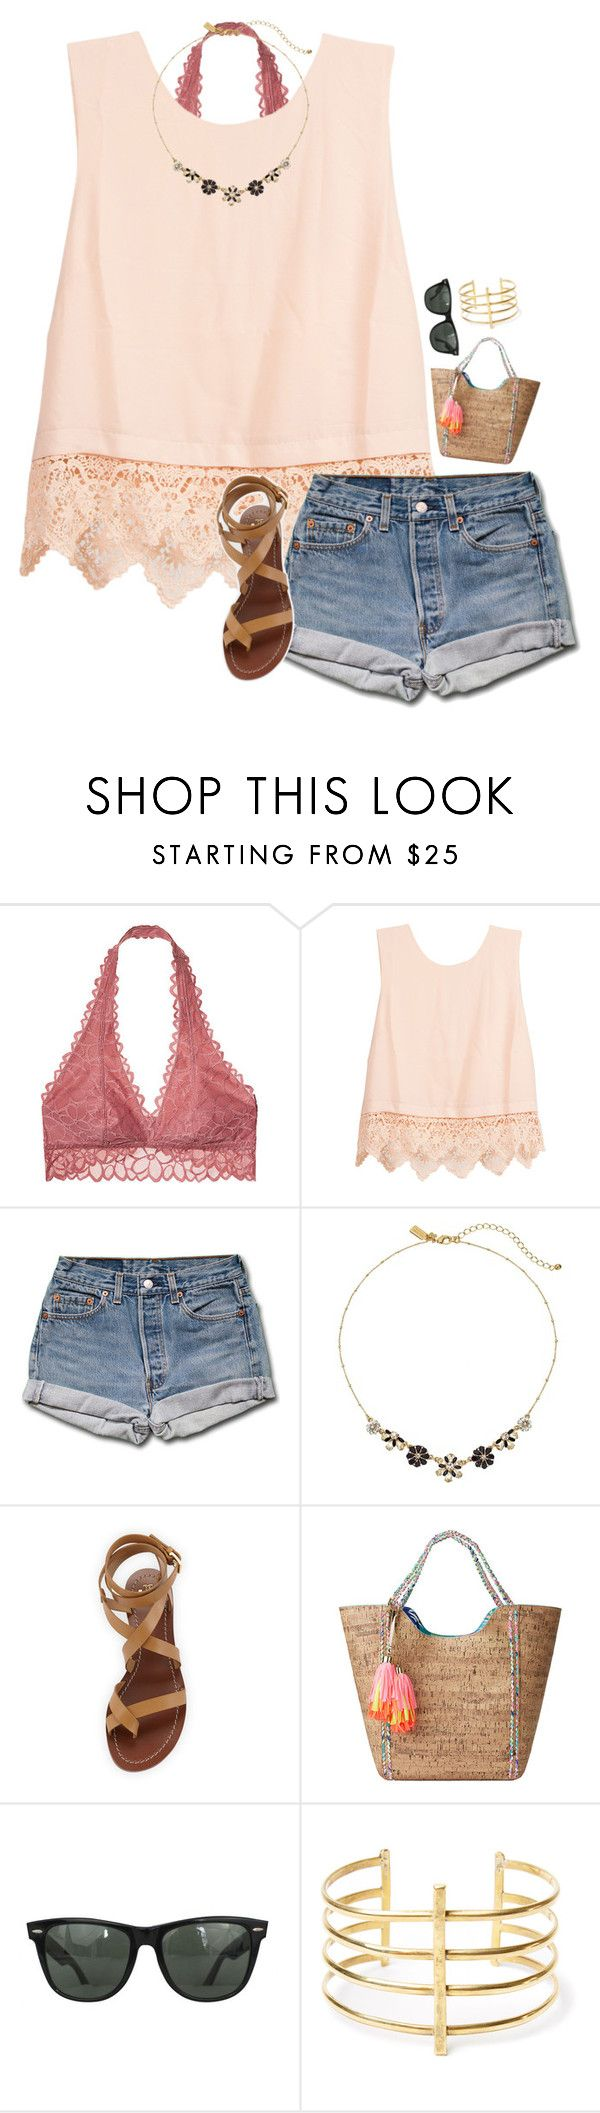 """""""Days like this I want to drive awa-ay"""" by sanddollars on Polyvore featuring Victoria's Secret, Lush Clothing, Kate Spade, Tory Burch, Lilly Pulitzer, Ray-Ban and BauXo"""